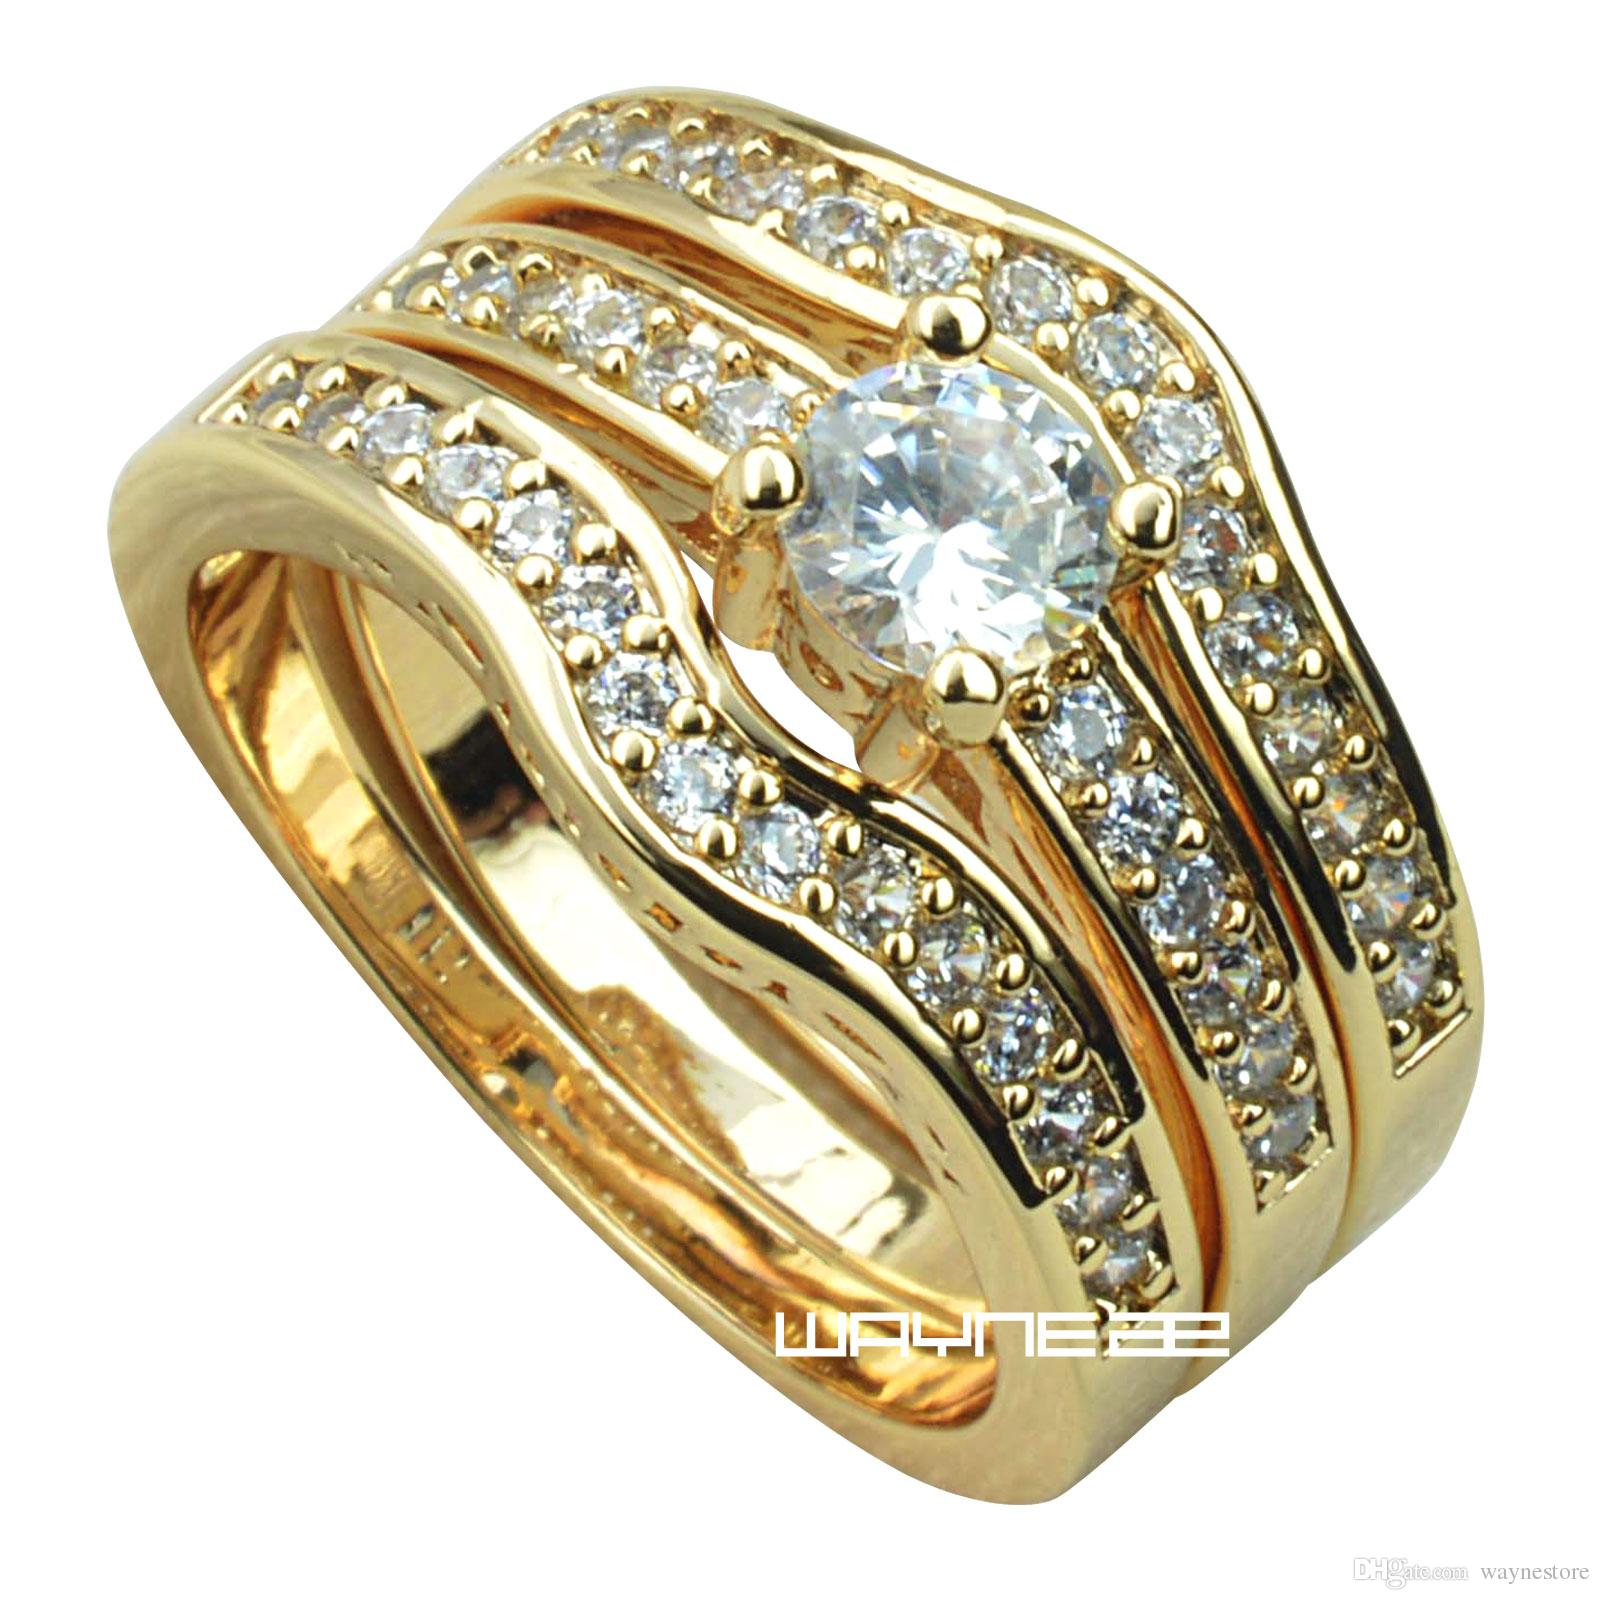 18k yellow Gold Fille engagement wedding ring sets w/ crystal R179 M-U